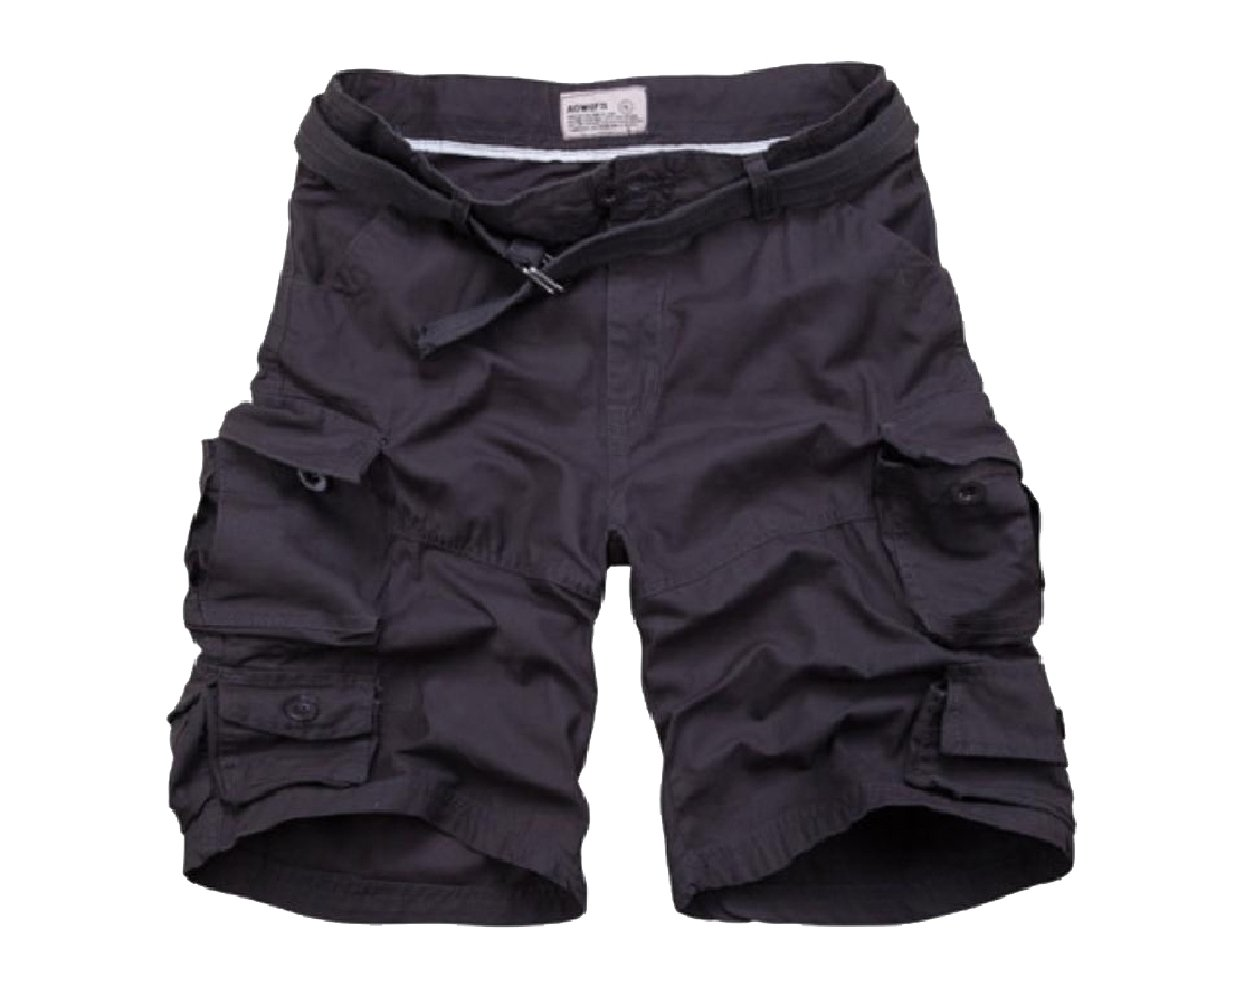 Winwinus Men Baggy Summer Belted Multi-Pockets Fine Cotton Boardshorts Dark Grey 2XL by Winwinus (Image #1)